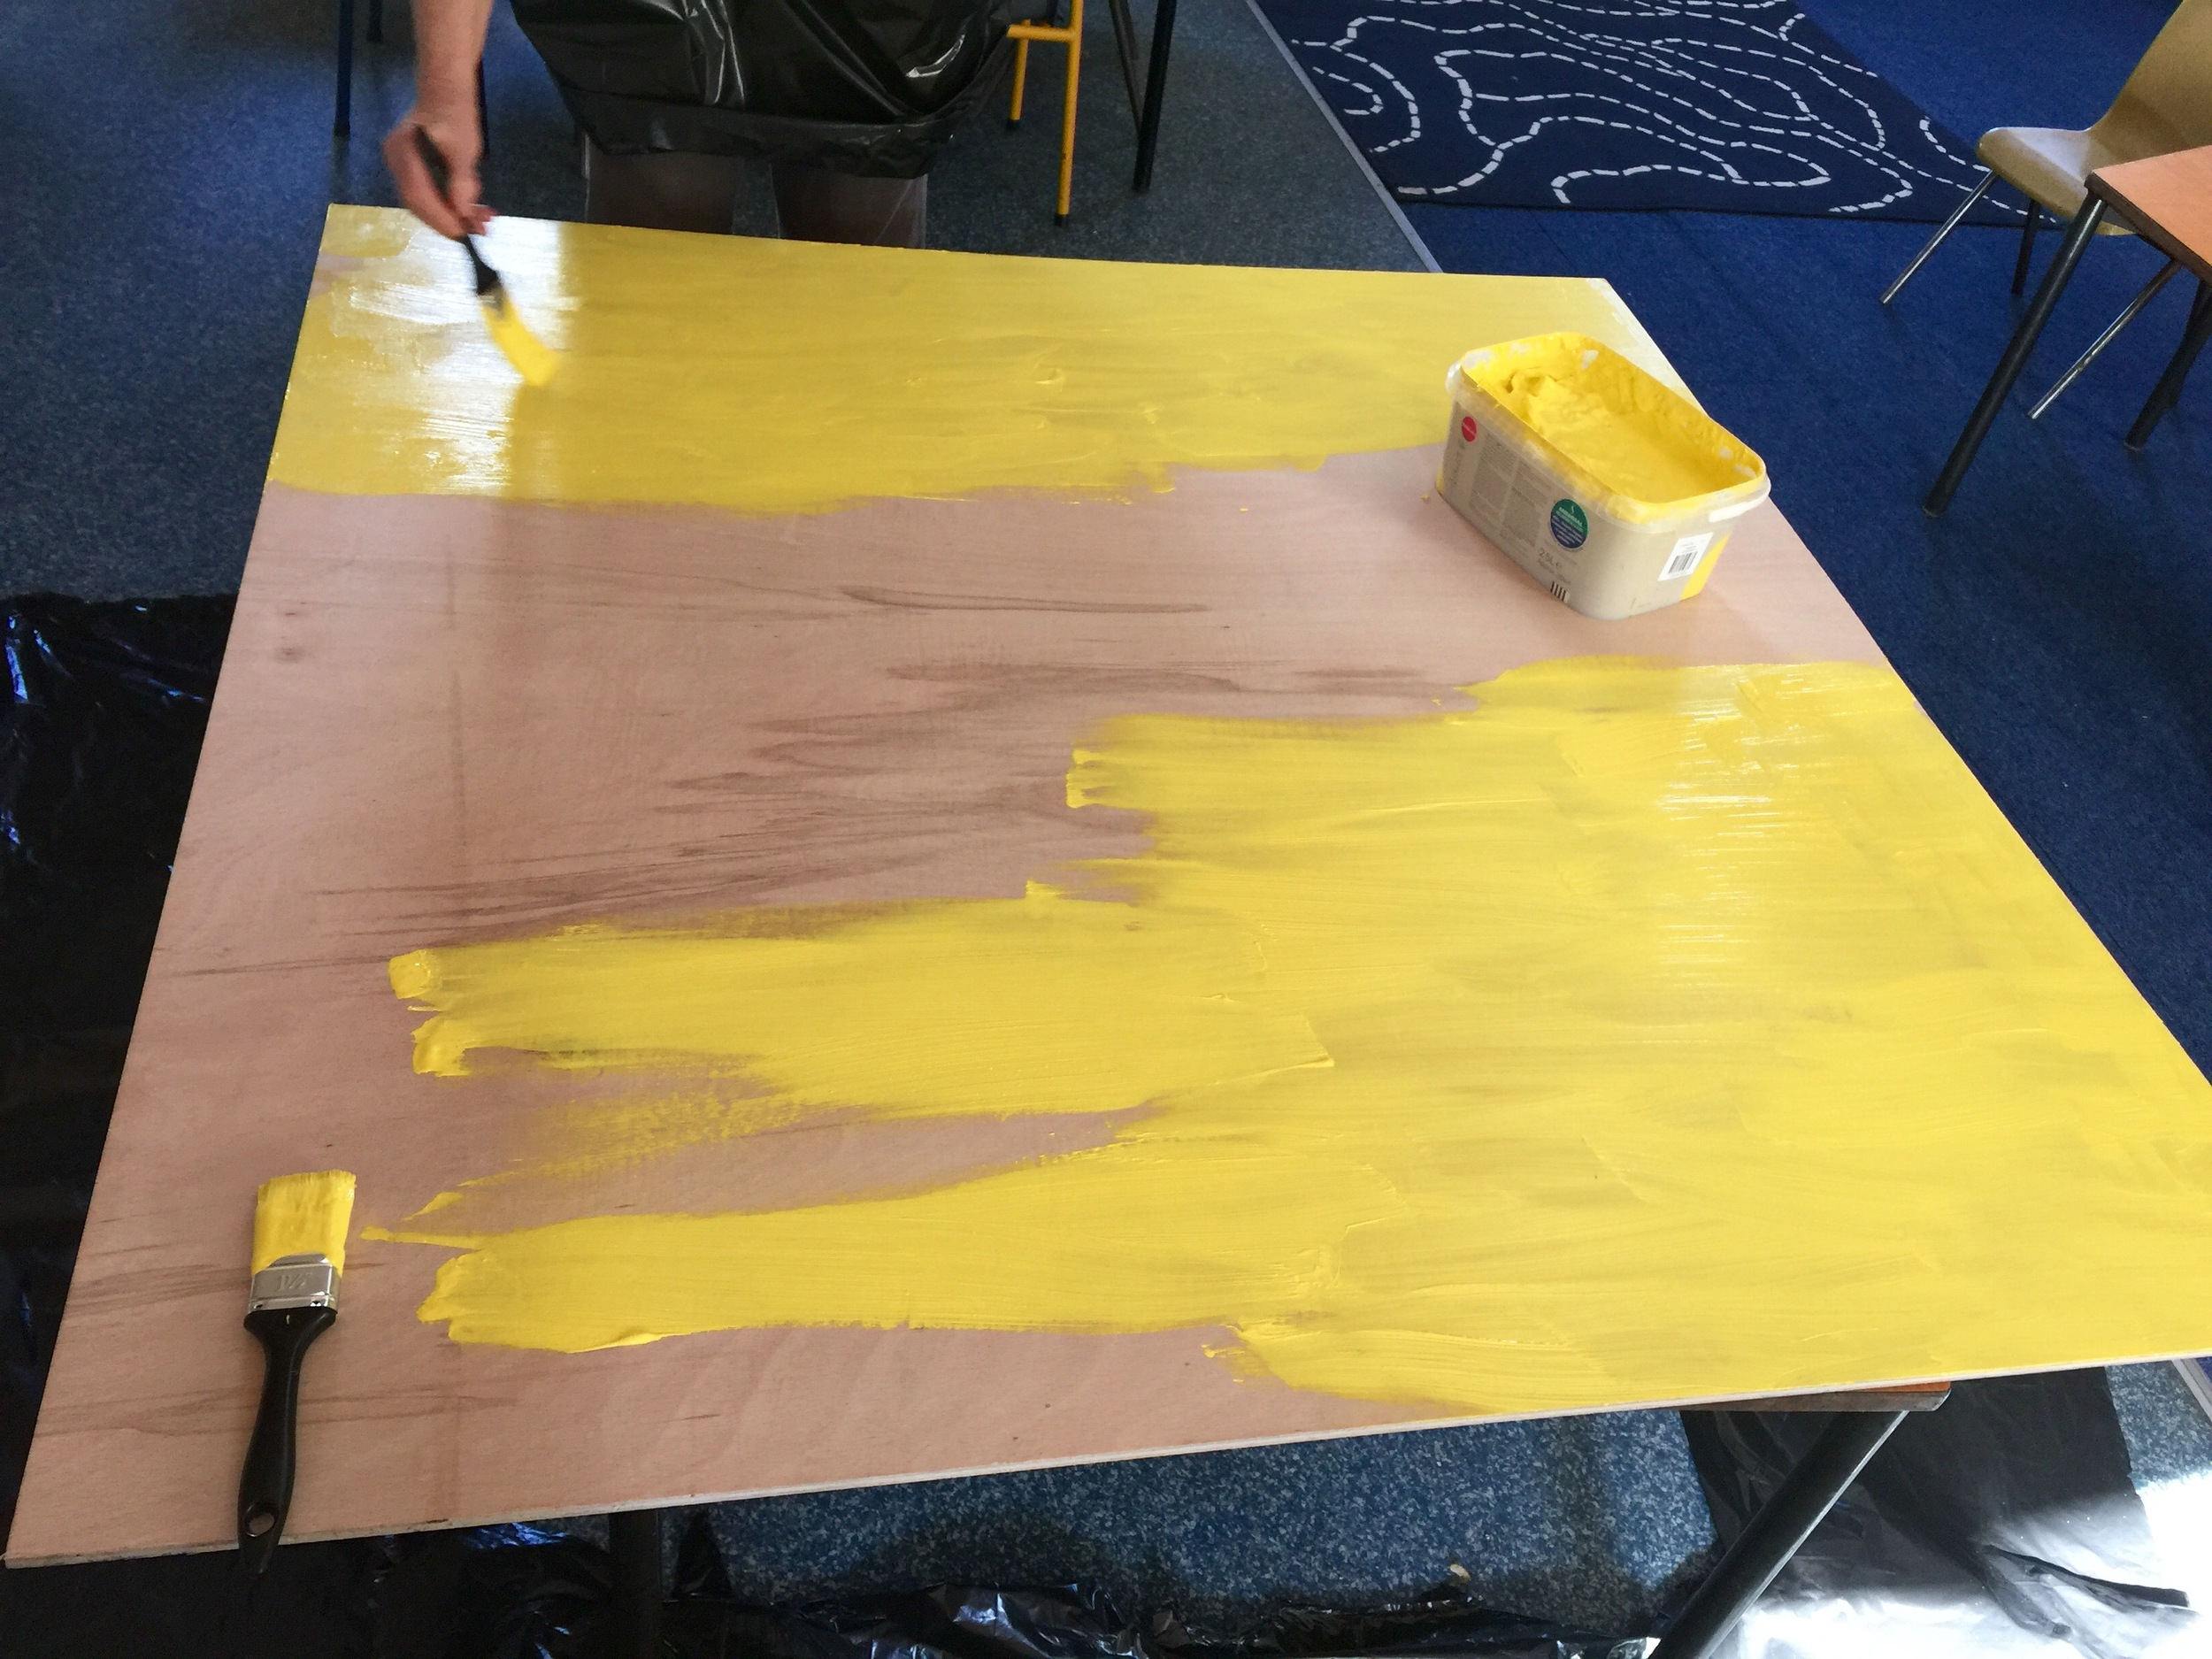 Week 2 - painting the mdf board